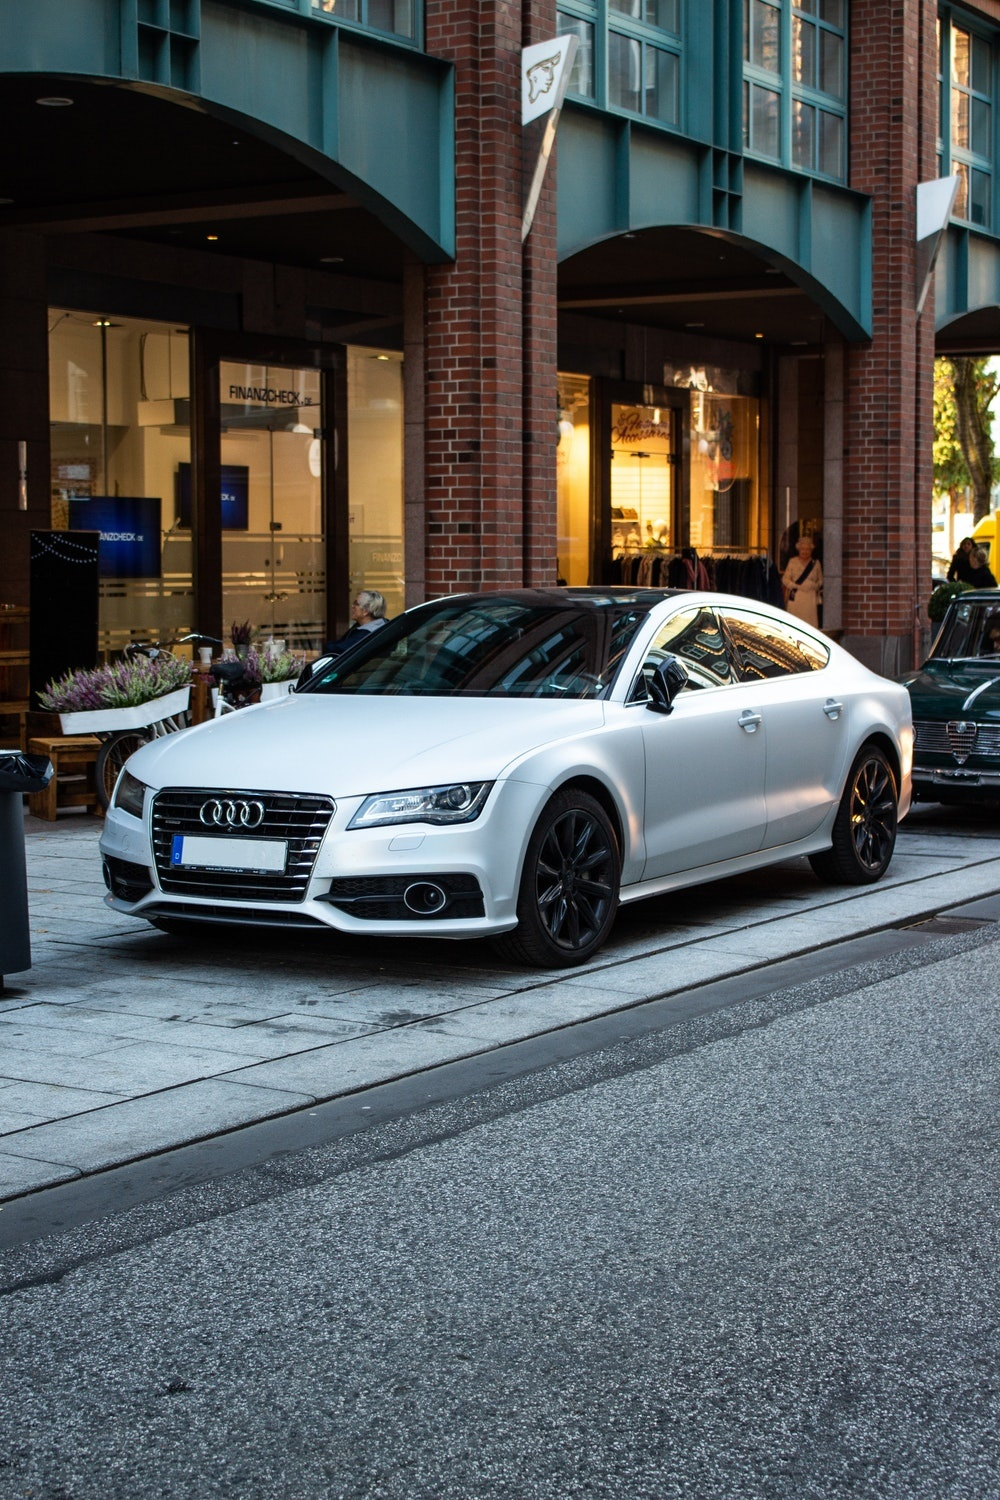 Modified Audi A7 Lovely 500 Audi Pictures Hd Download Free Images On Unsplash-2589 Of Unique Modified Audi A7